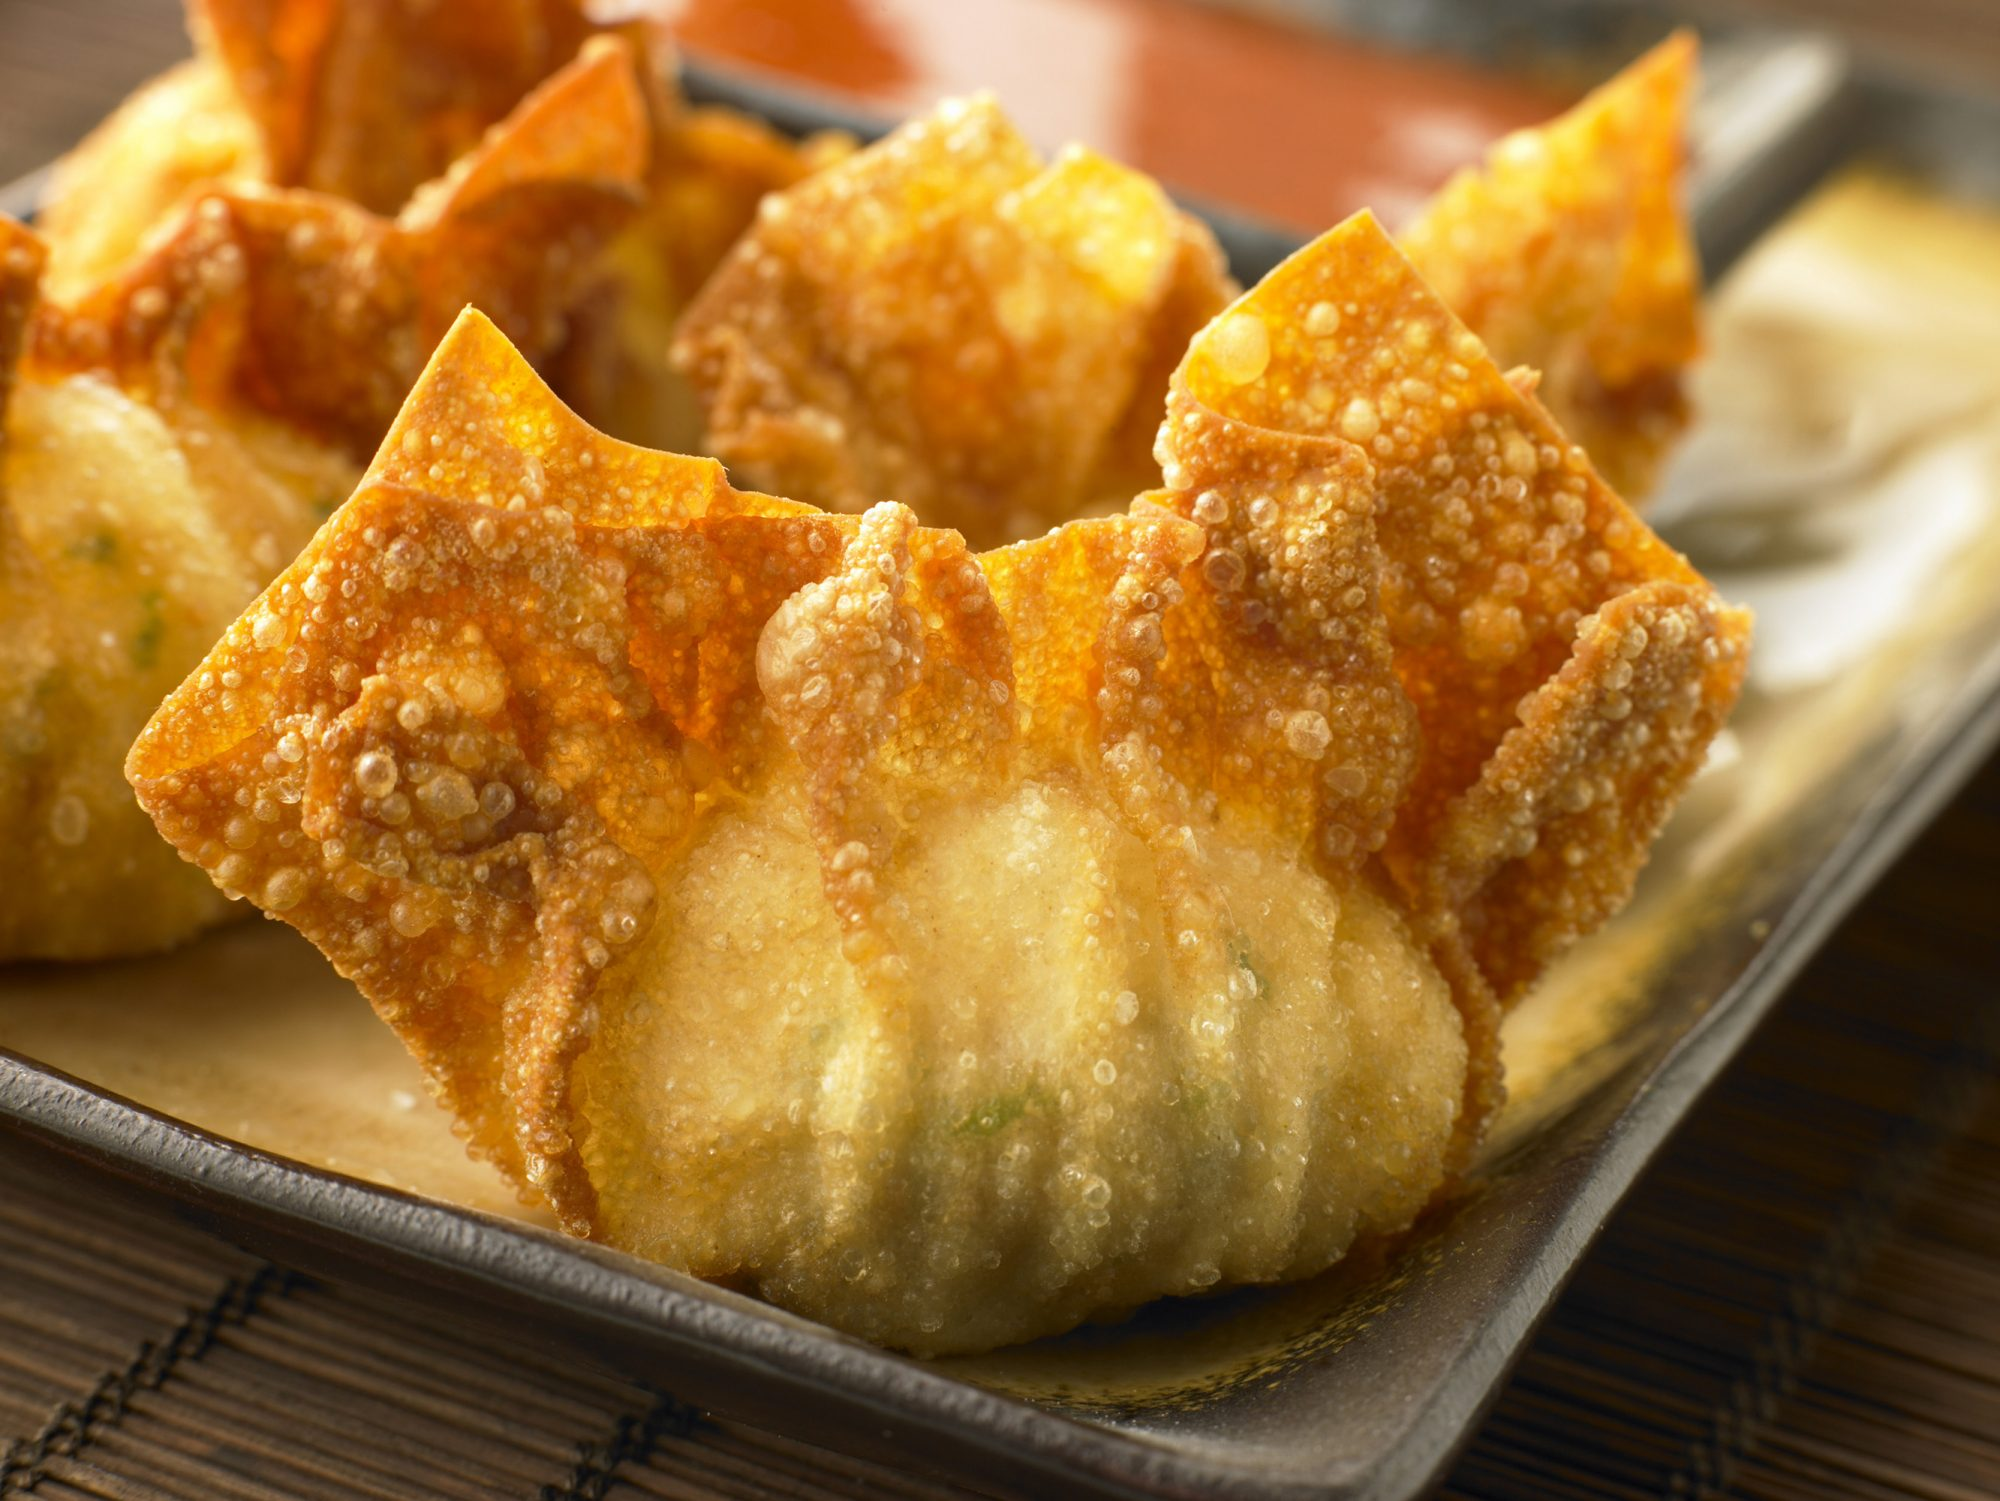 Golden Wonton Purses